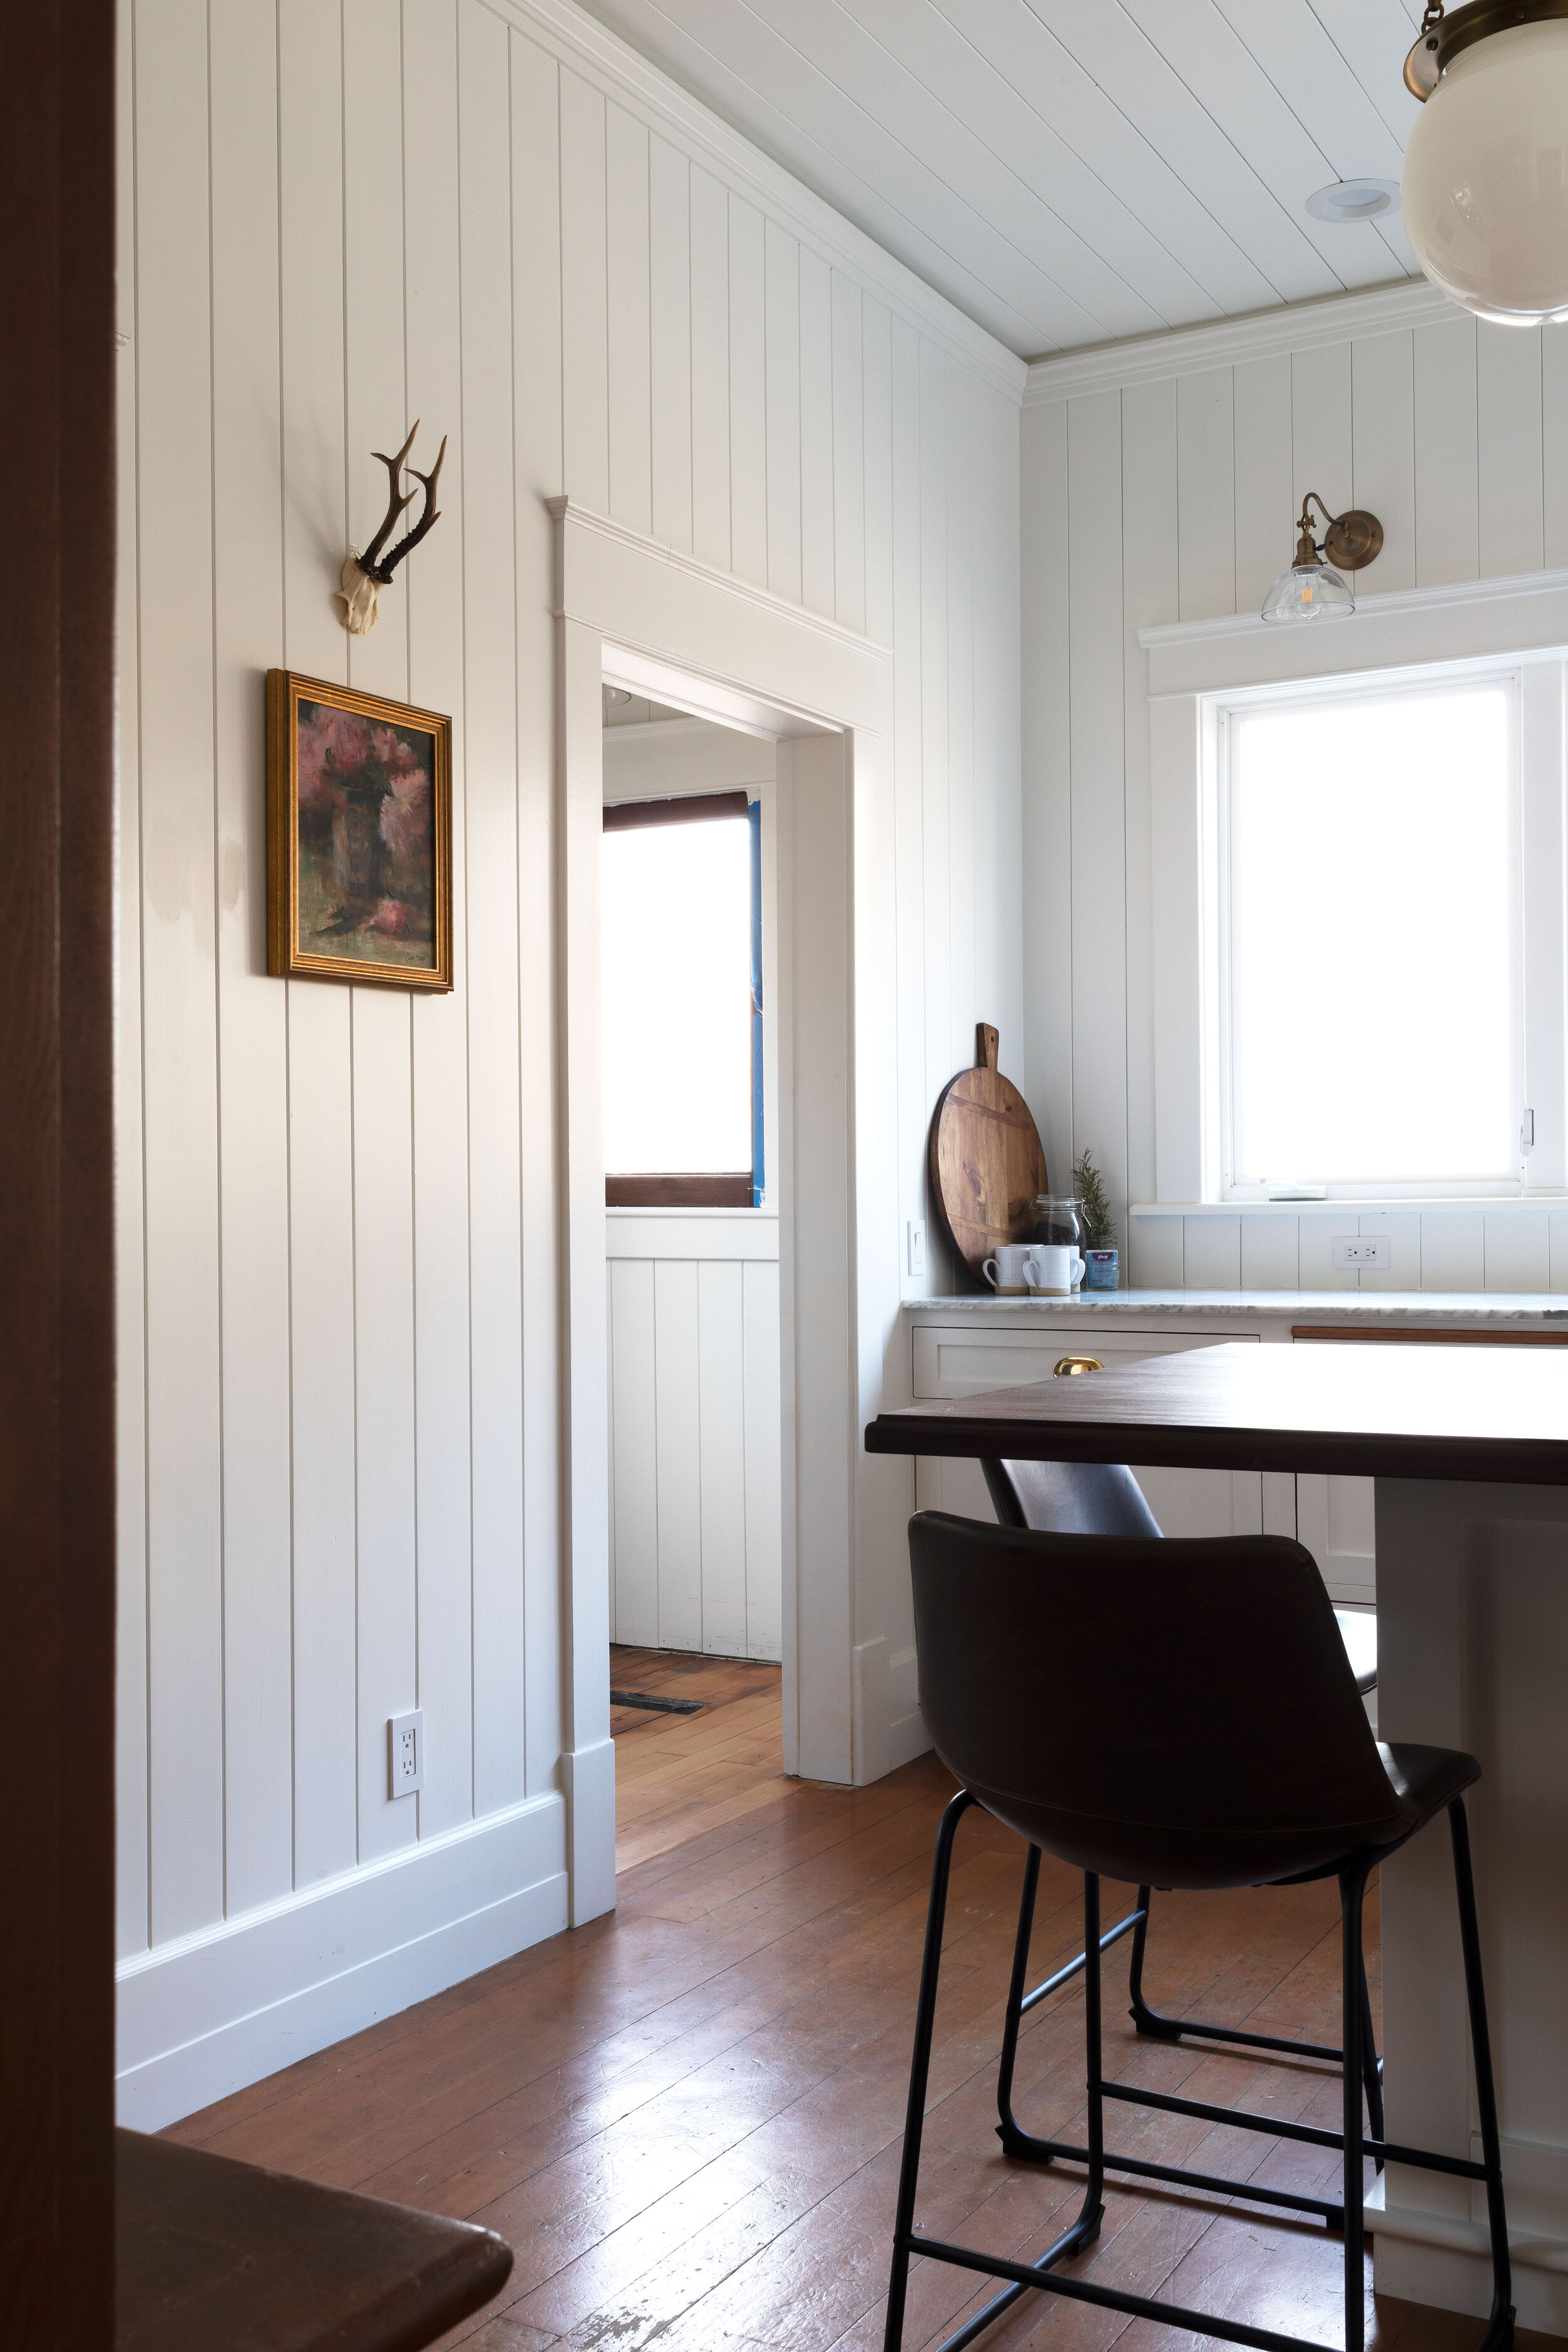 The-Grit-and-Polish---Farmhouse-Country-Kitchen-Reveal-Paneling-+-molding.jpg